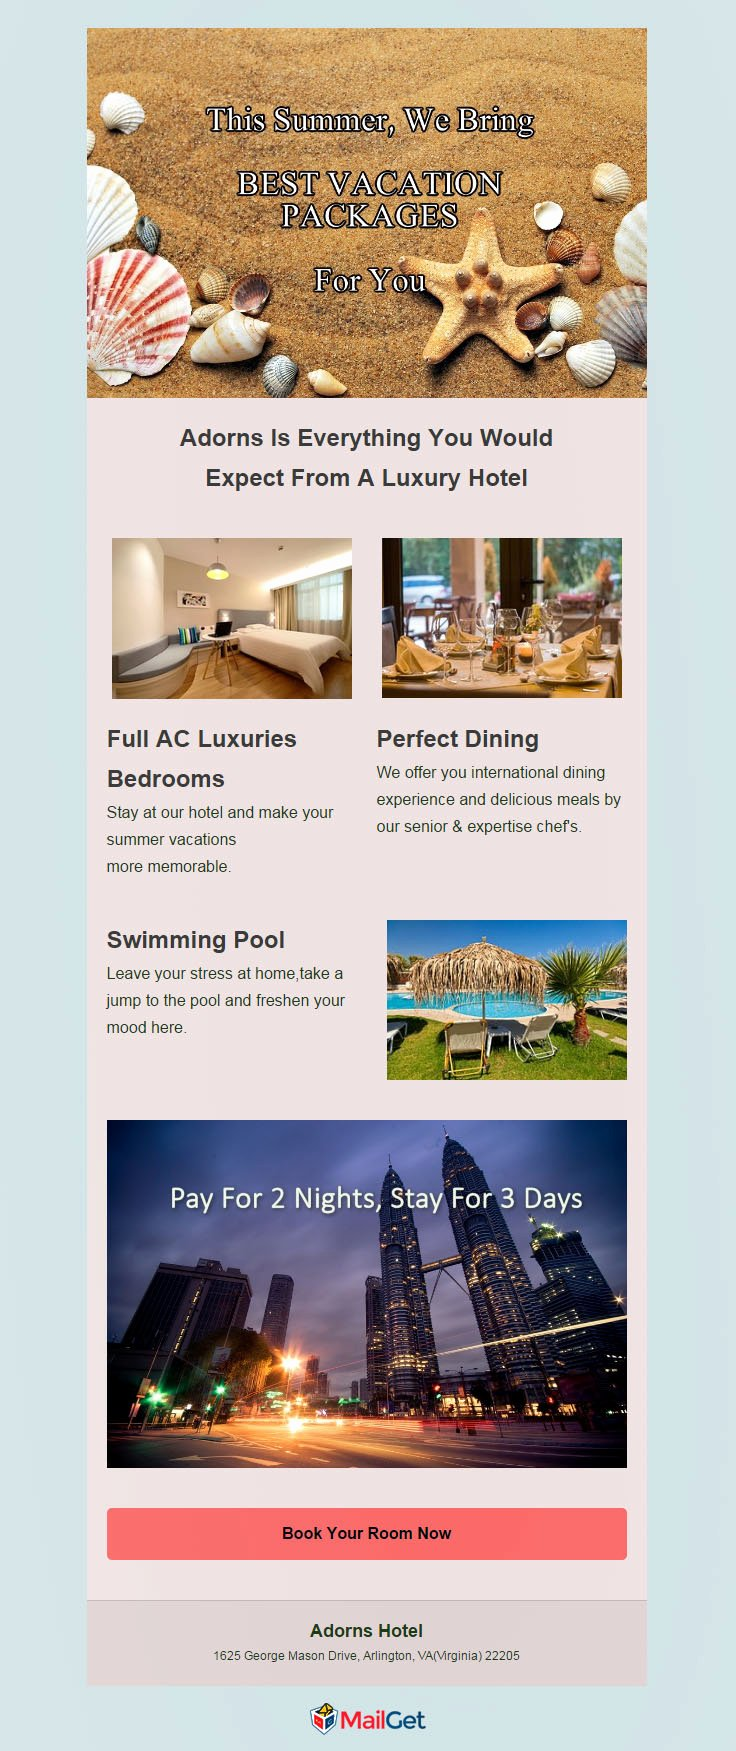 Product Promotion Email Template Best Of 5 Free Hotel Email Marketing Templates